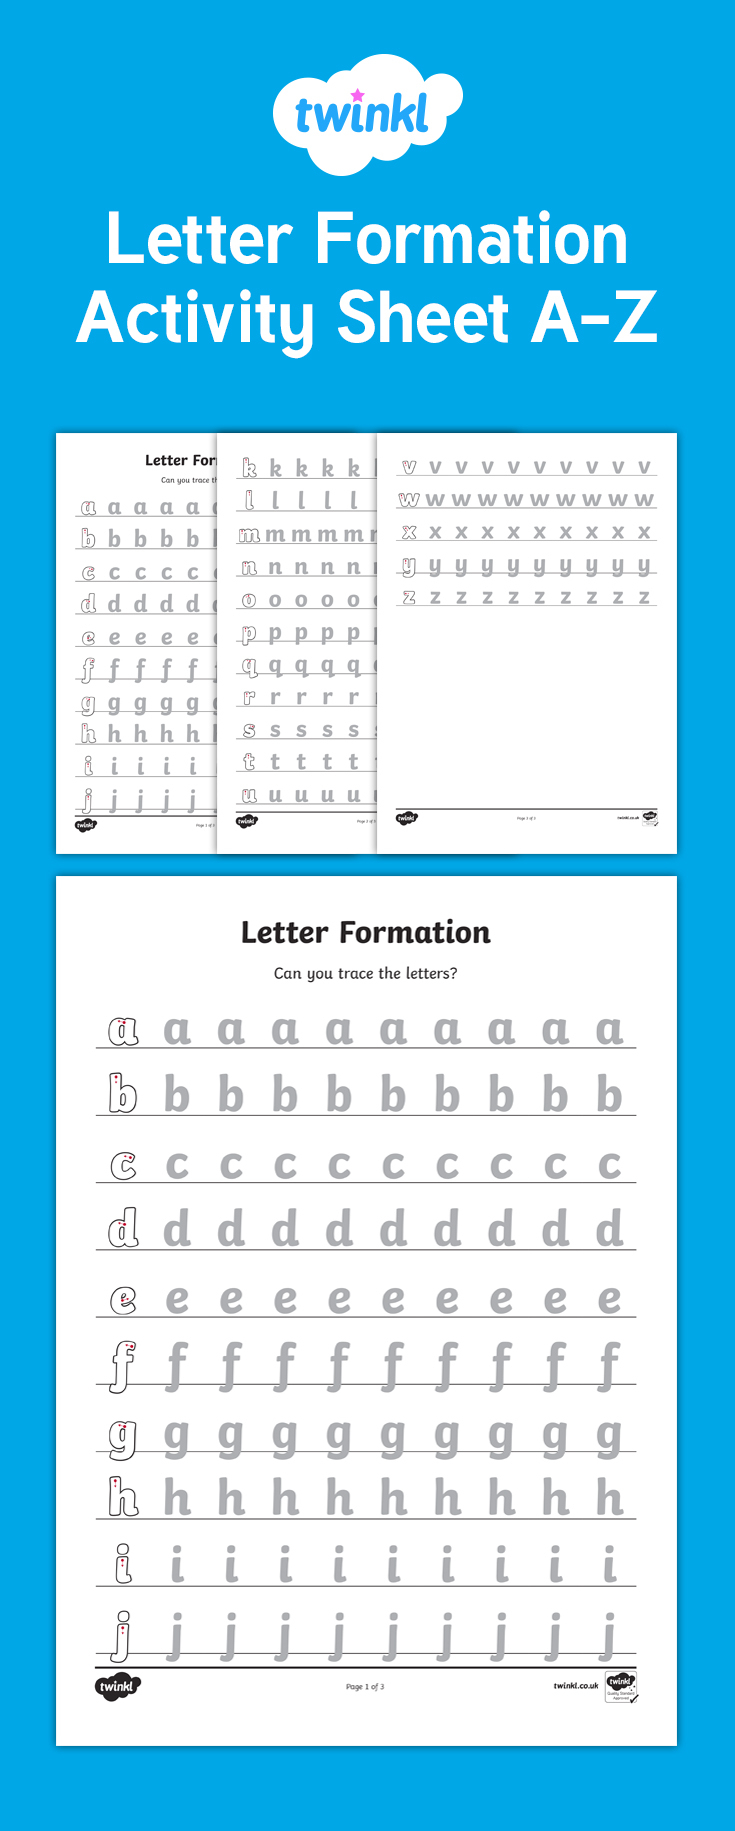 A Set Of Letter Formation Worksheets For Each Letter Of The regarding Letter Tracing Worksheets Twinkl